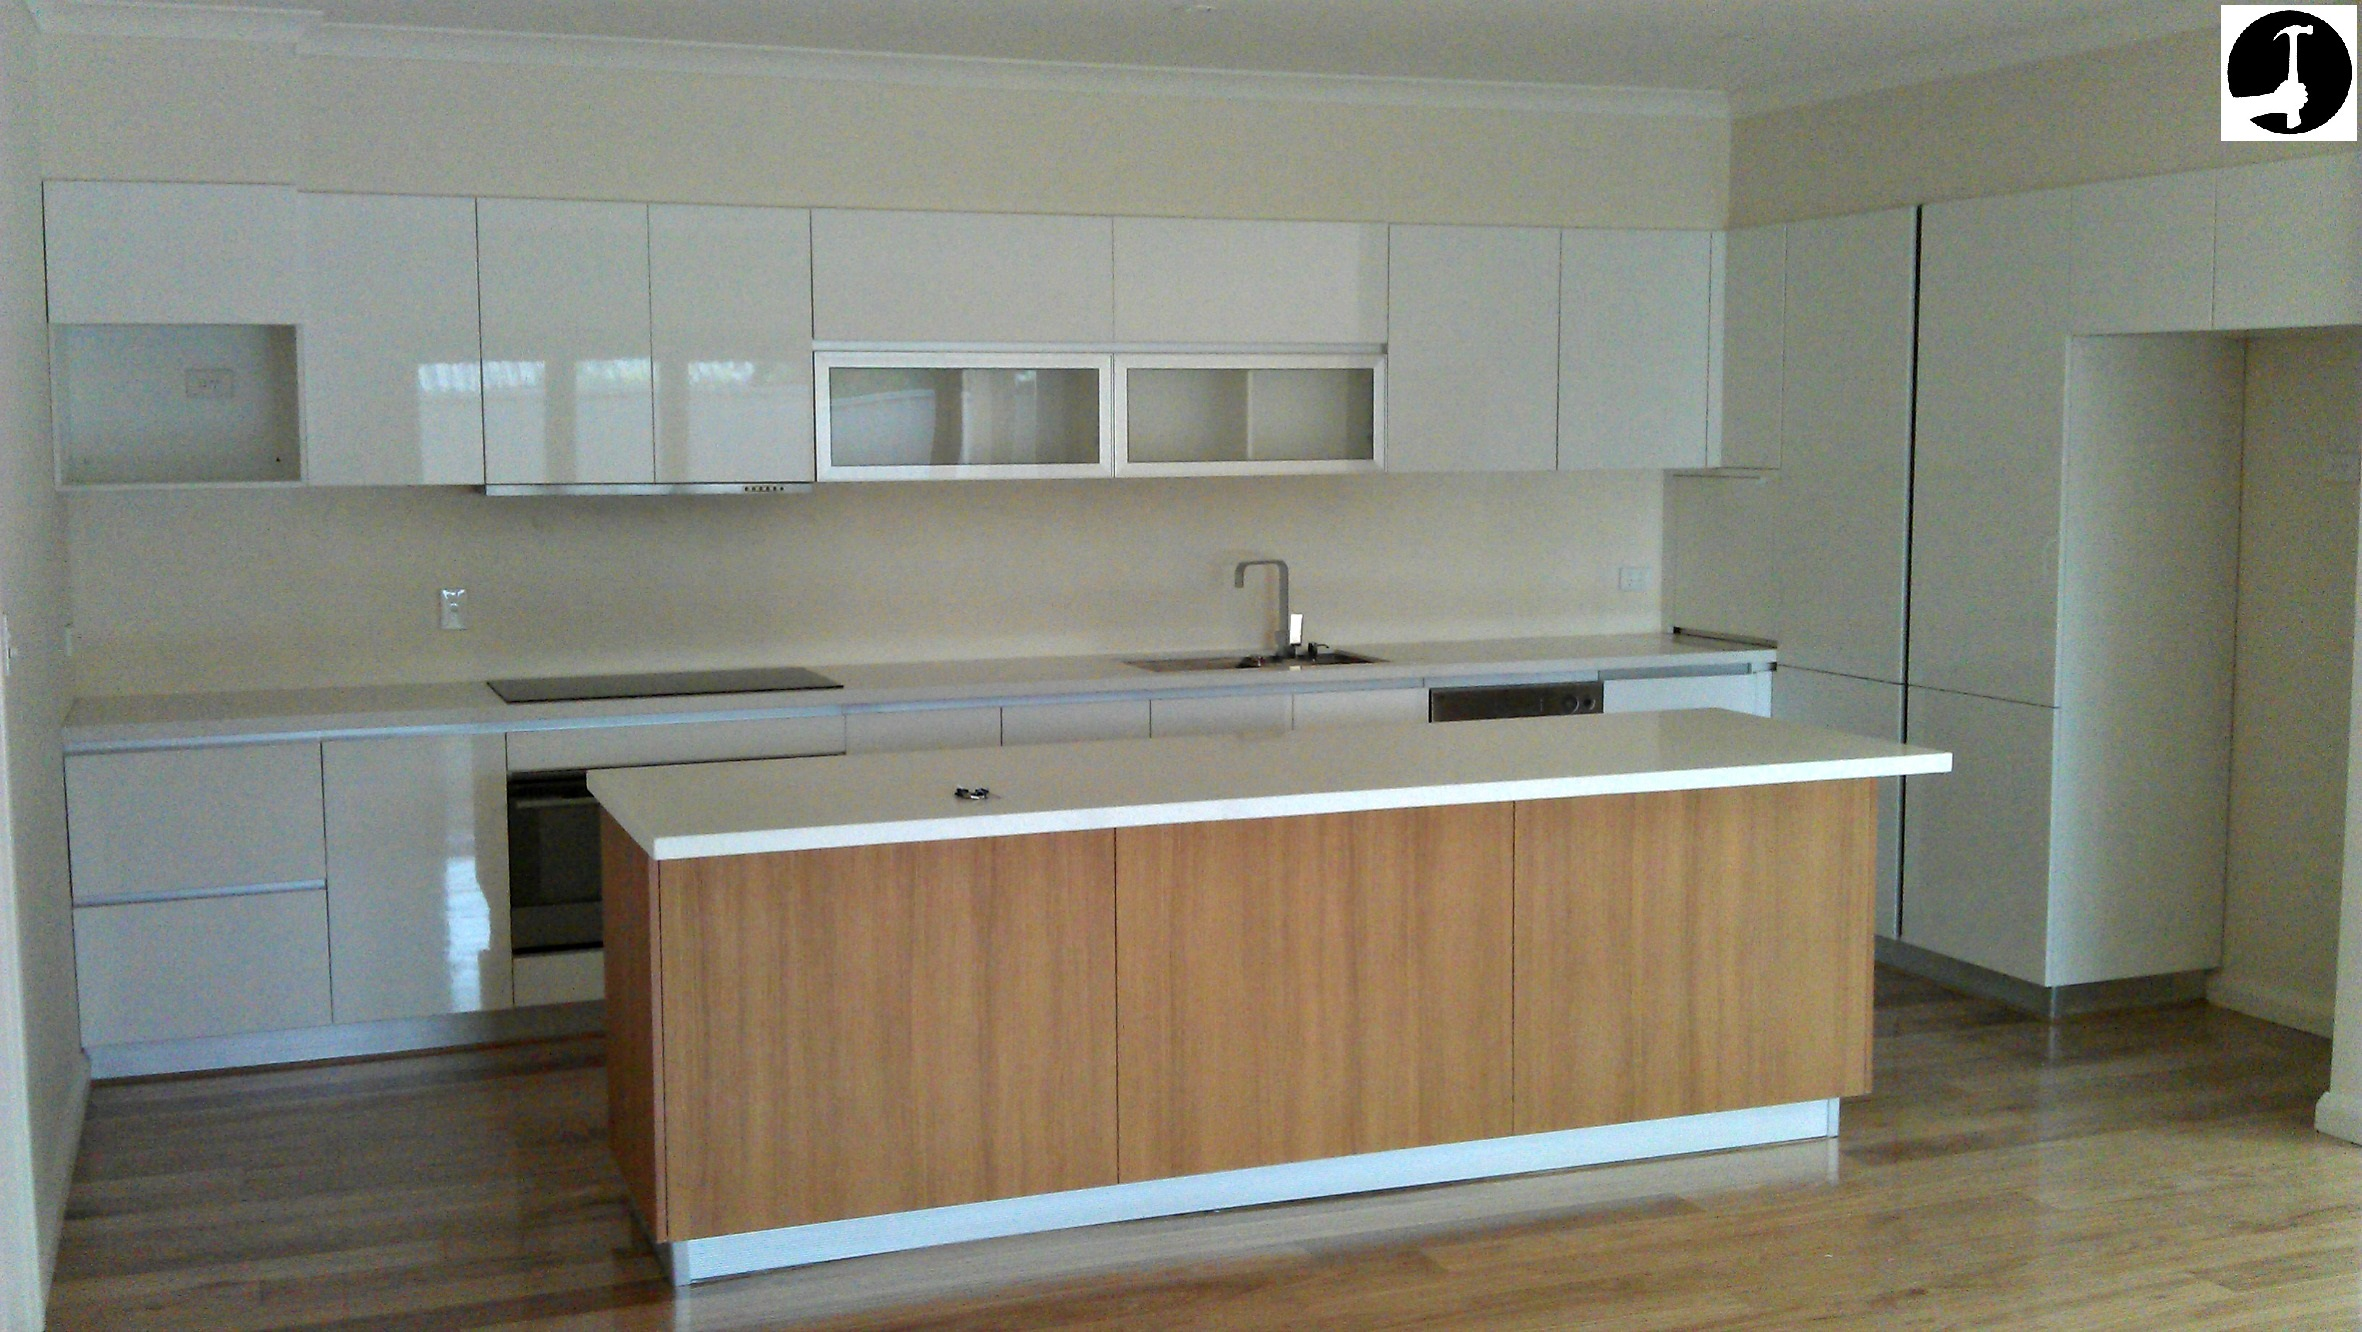 Fitted Kitchen Unit How To Install A Kitchen Like A Pro Perfectly Level And Doors Aligned